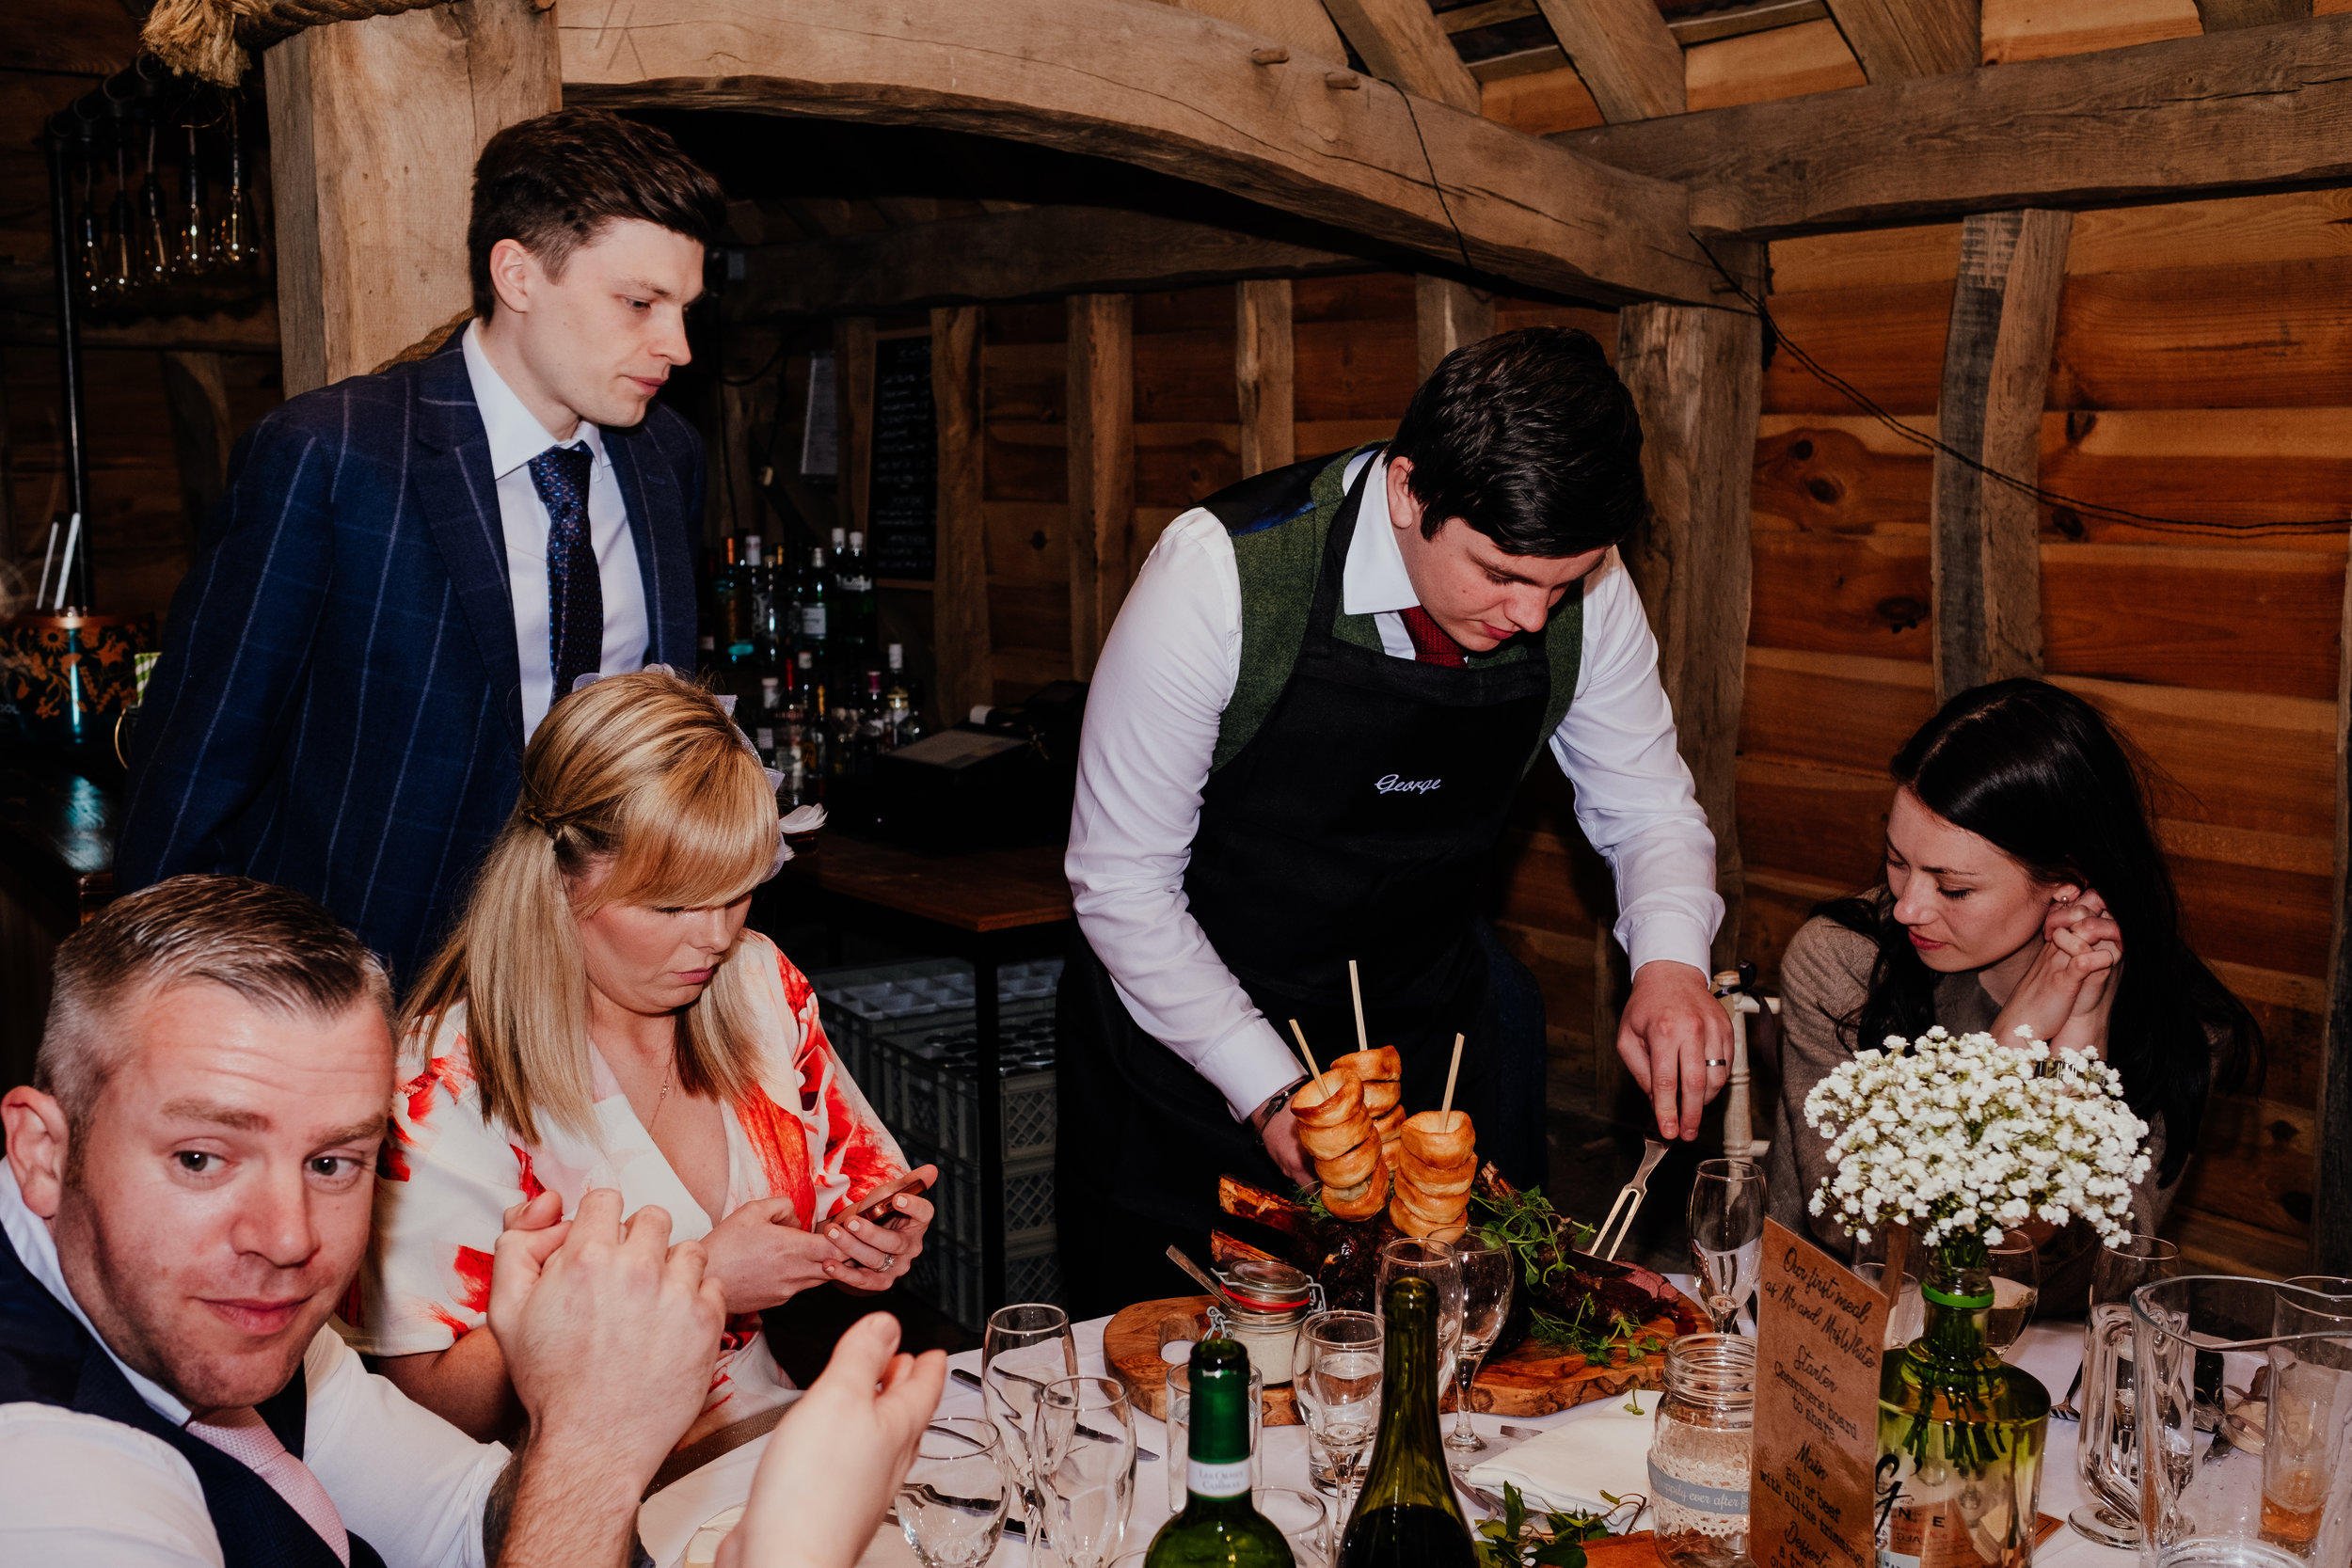 Guests eating a carvery for the wedding breakfast